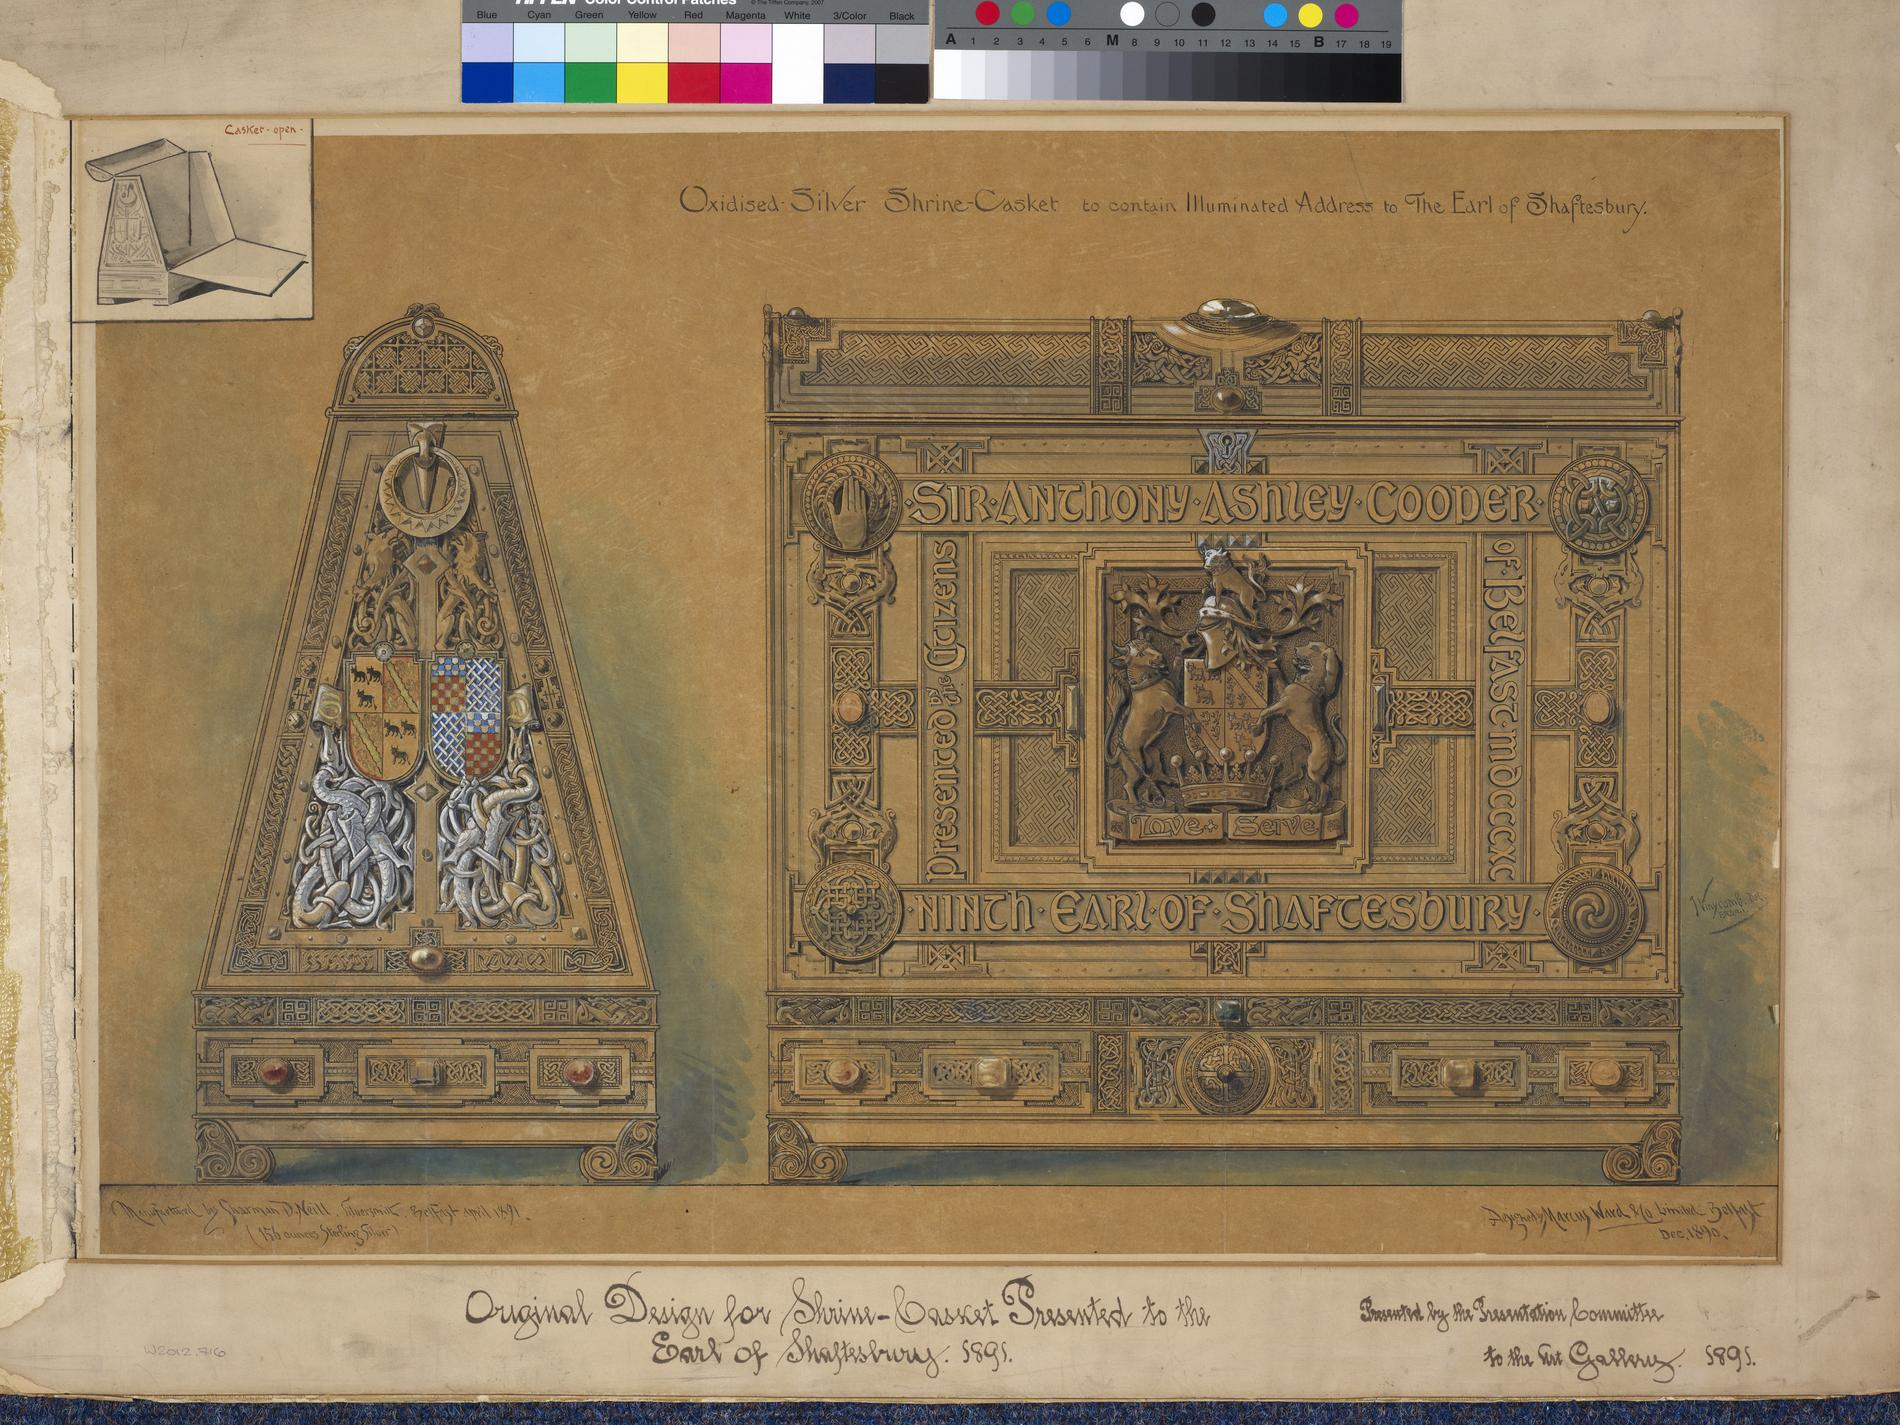 Oxdised Silver Shrine Casket to contain Illuminated Address to the Earl of Shaftesbury (Design)